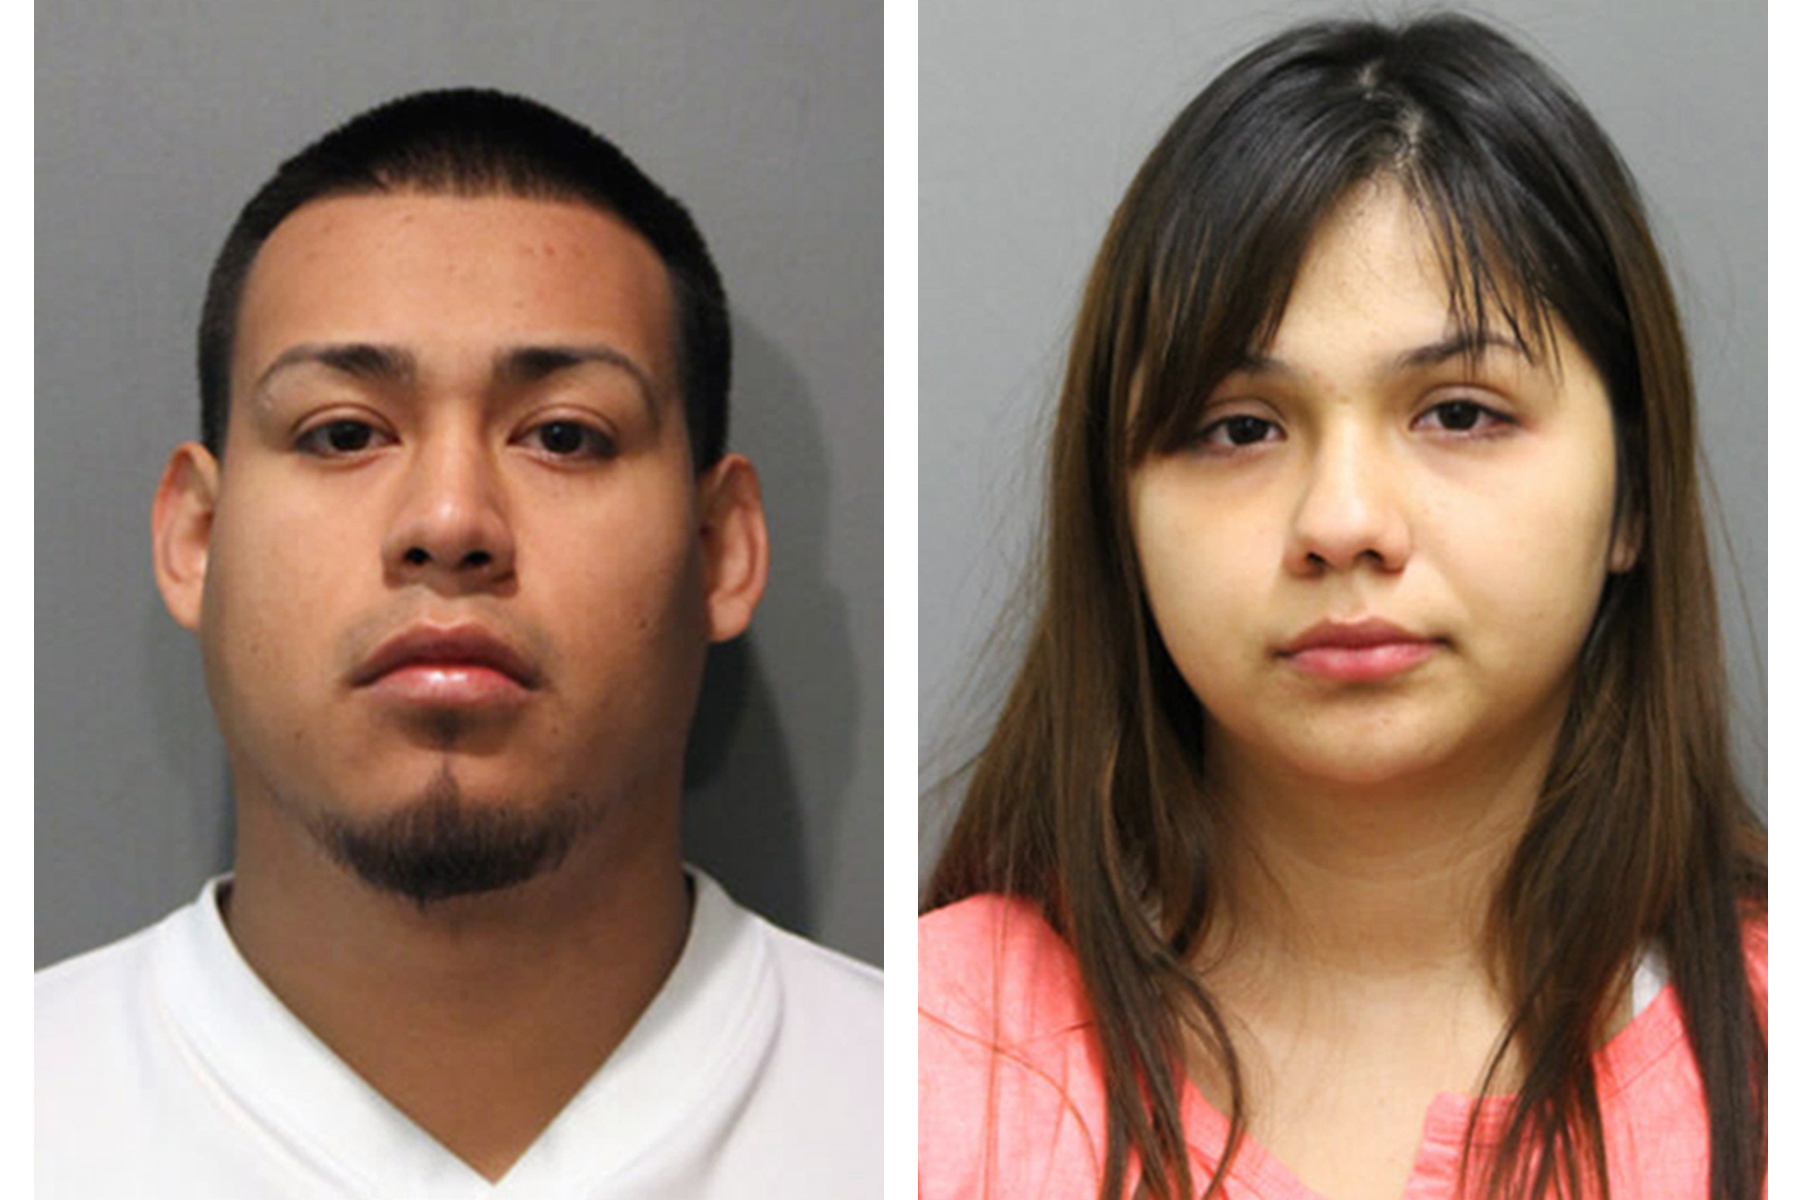 This combination of booking photos provided by the Chicago Police Department on Thursday, May 19, 2016 shows Diego Uribe Cruz and his girlfriend, Jafeth Ramos,  who were arrested Thursday and charged with six counts of first-degree murder in the killings of six members of a family in Chicago's Gage Park neighborhood.